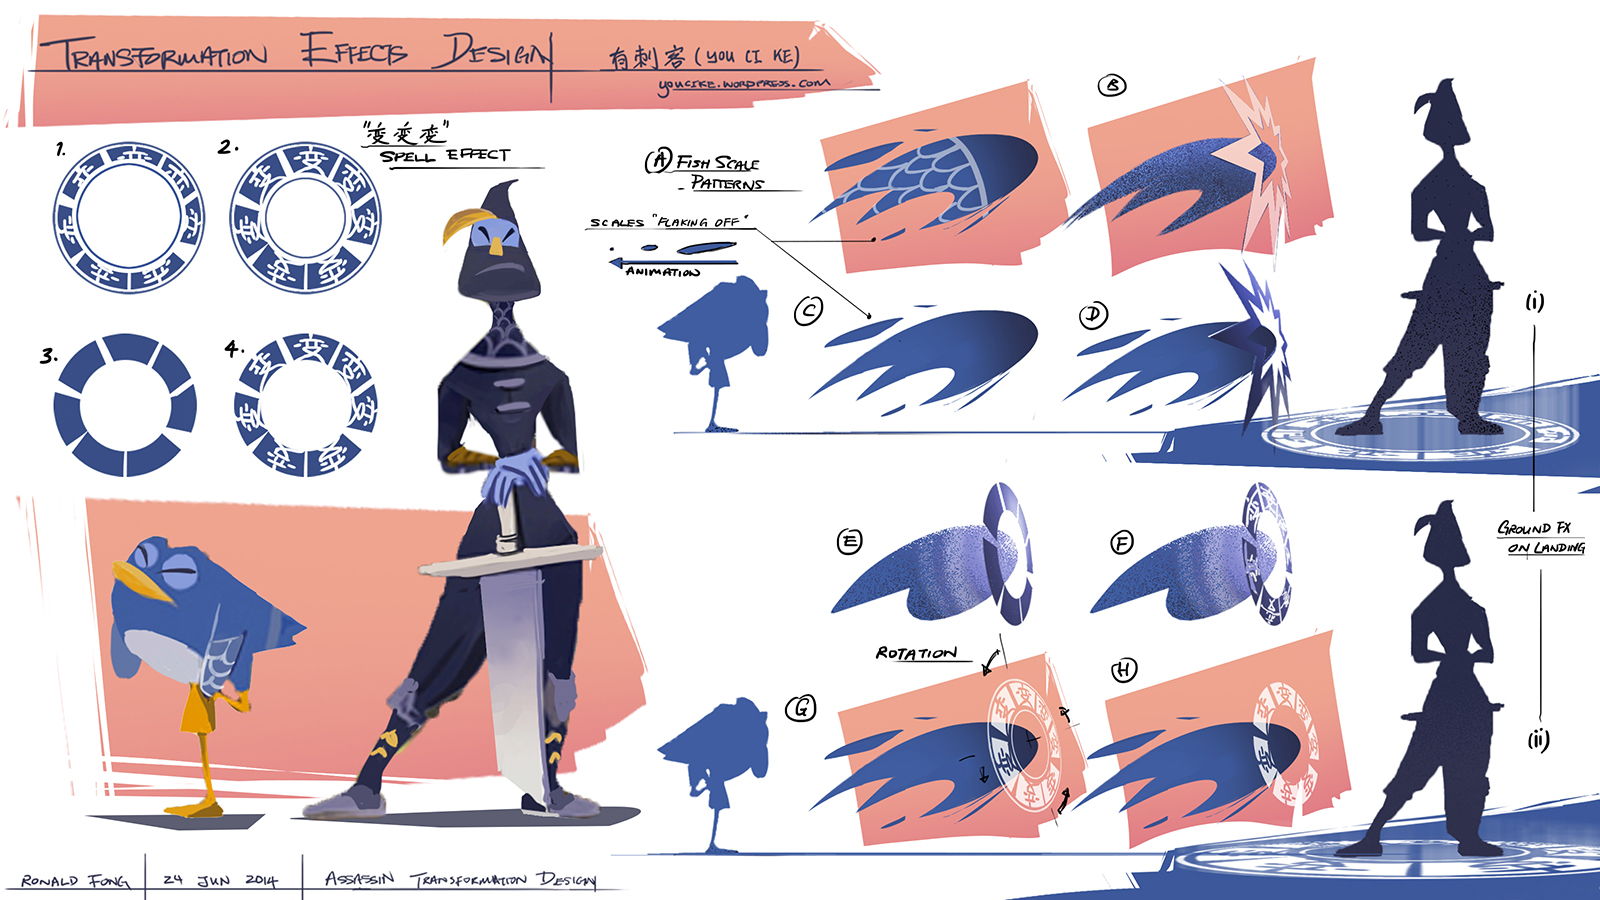 Assassin Transformation Design for You Ci Ke